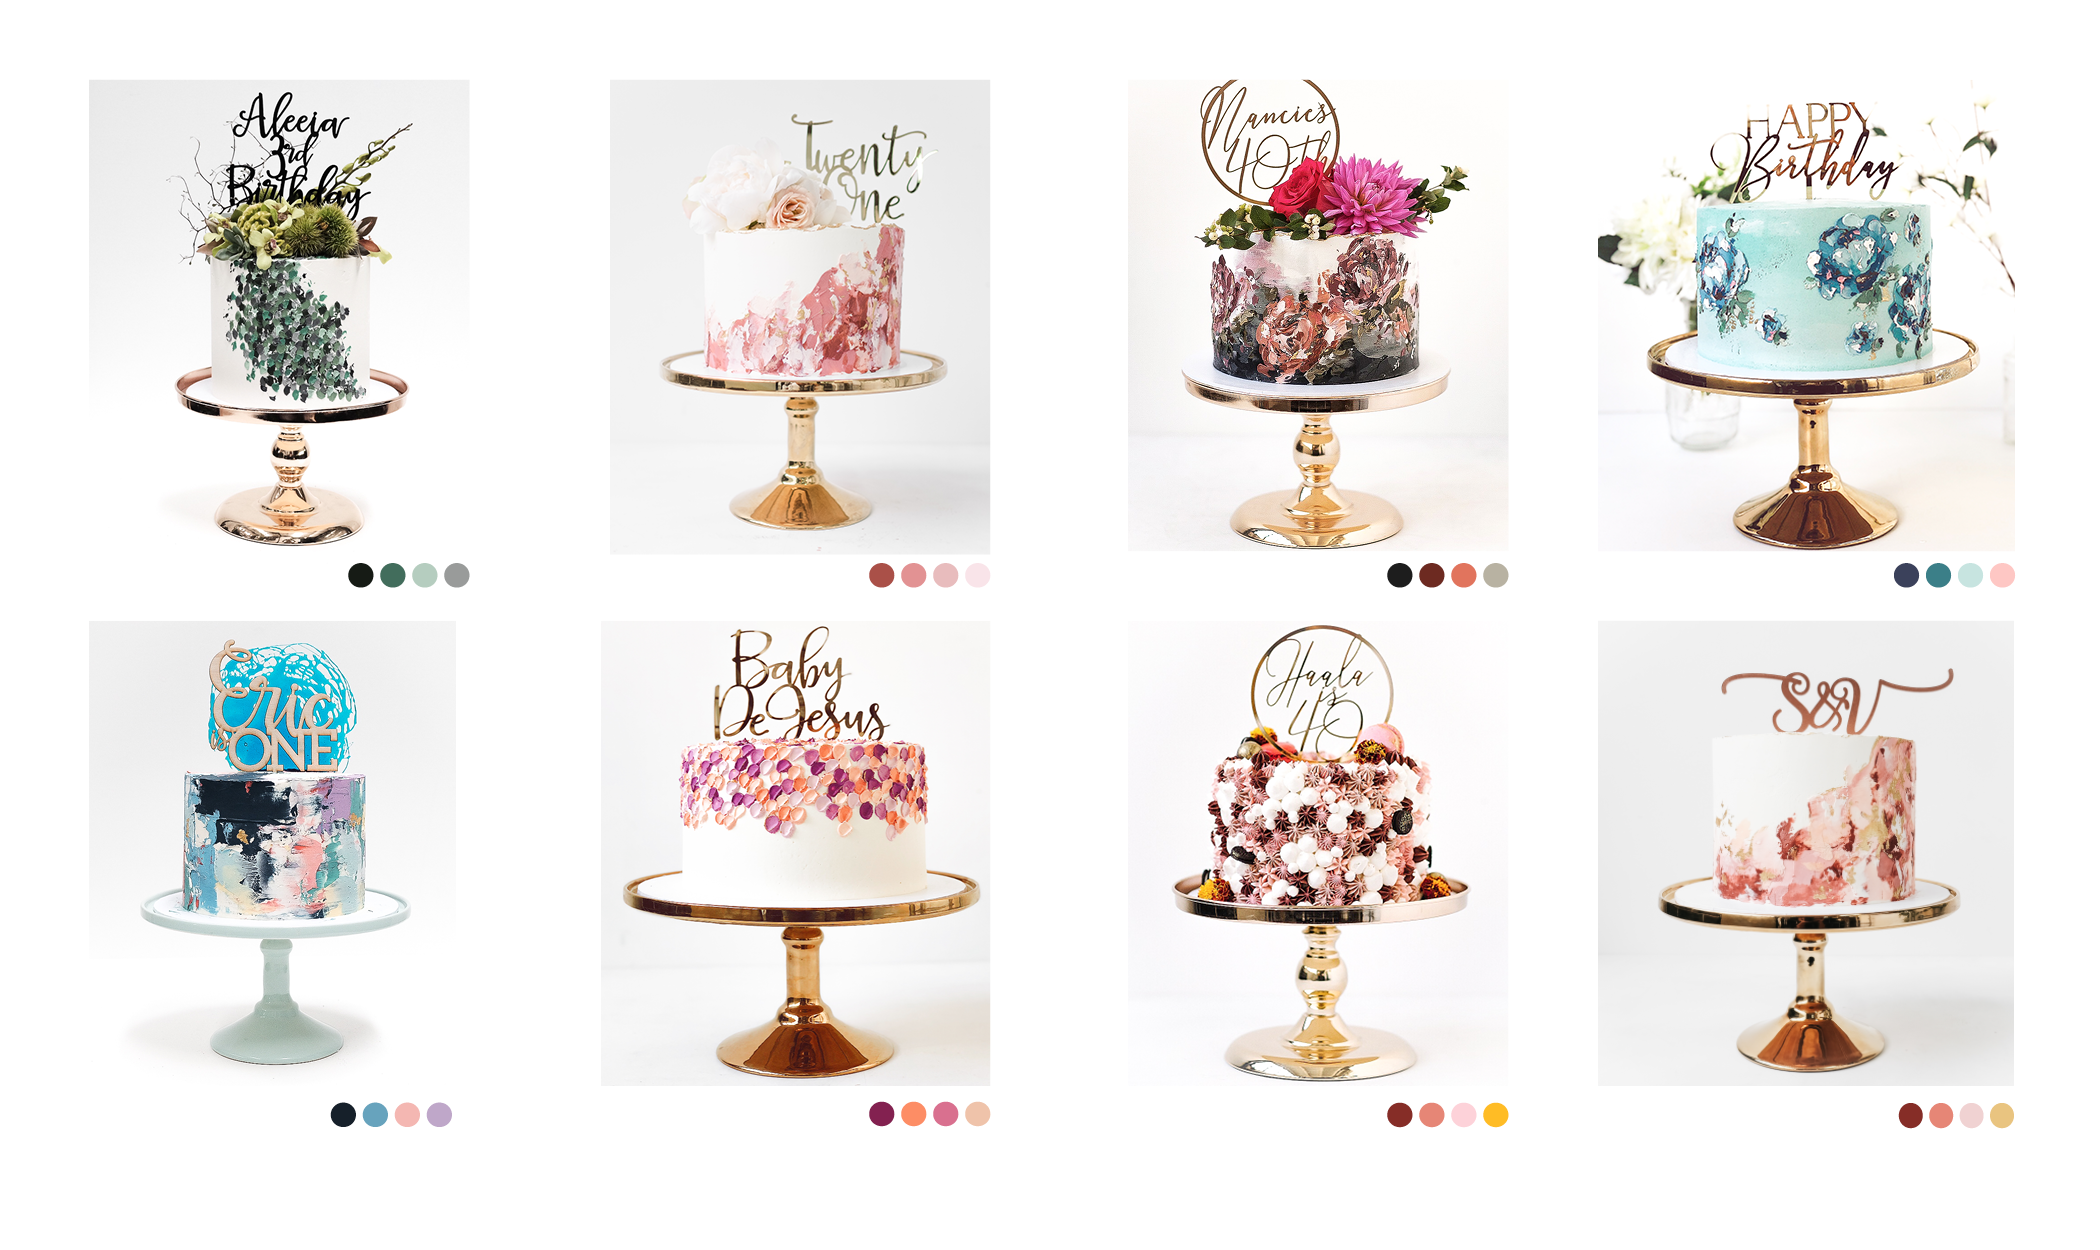 Cake Gallery 1.png